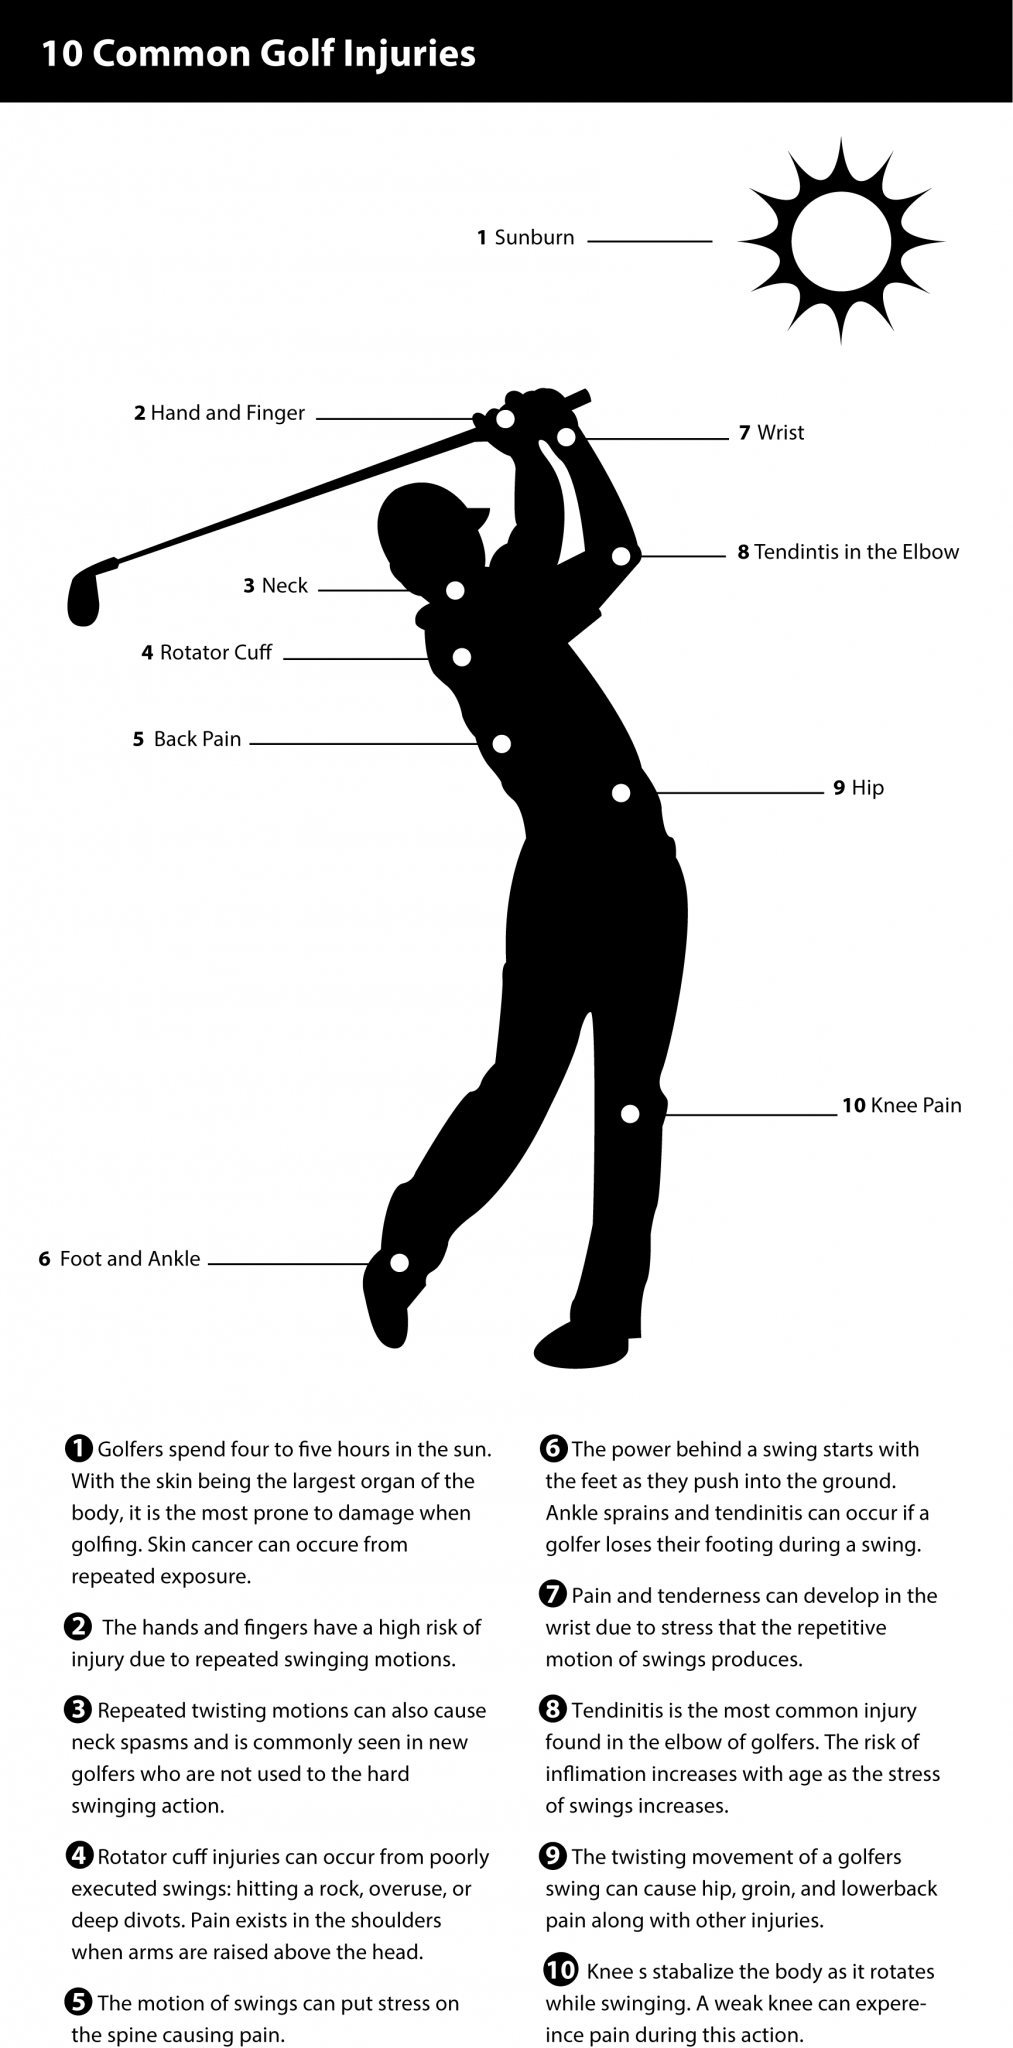 The top ten most common golf injuries